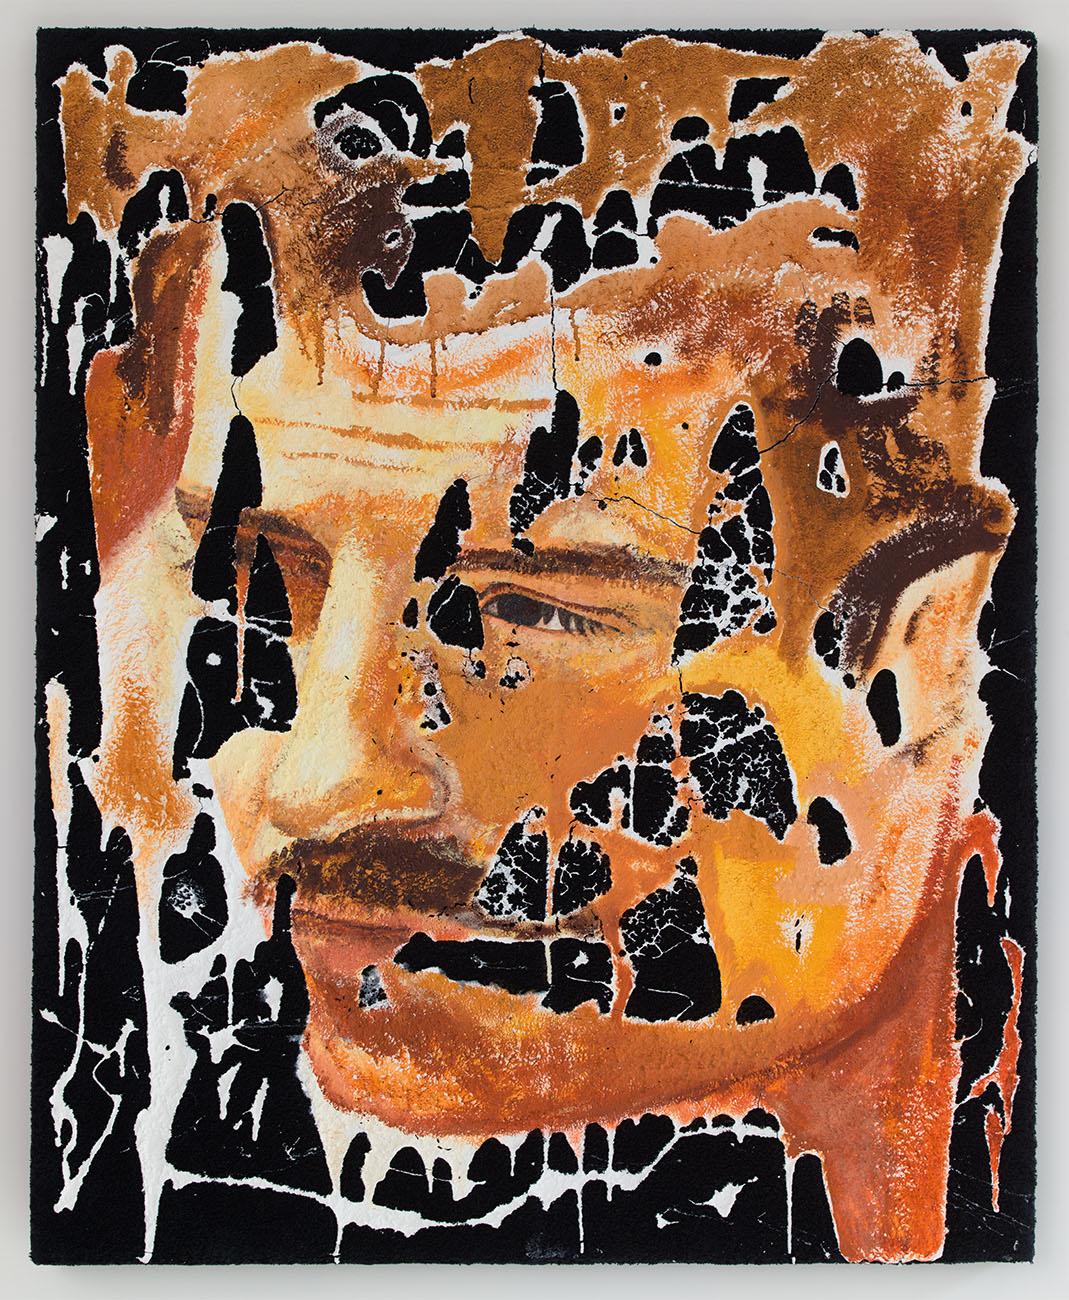 A Gay Face , 2015, oil and gesso on sewn towels, 42 x 34 in/106.68 x 86.36 cm